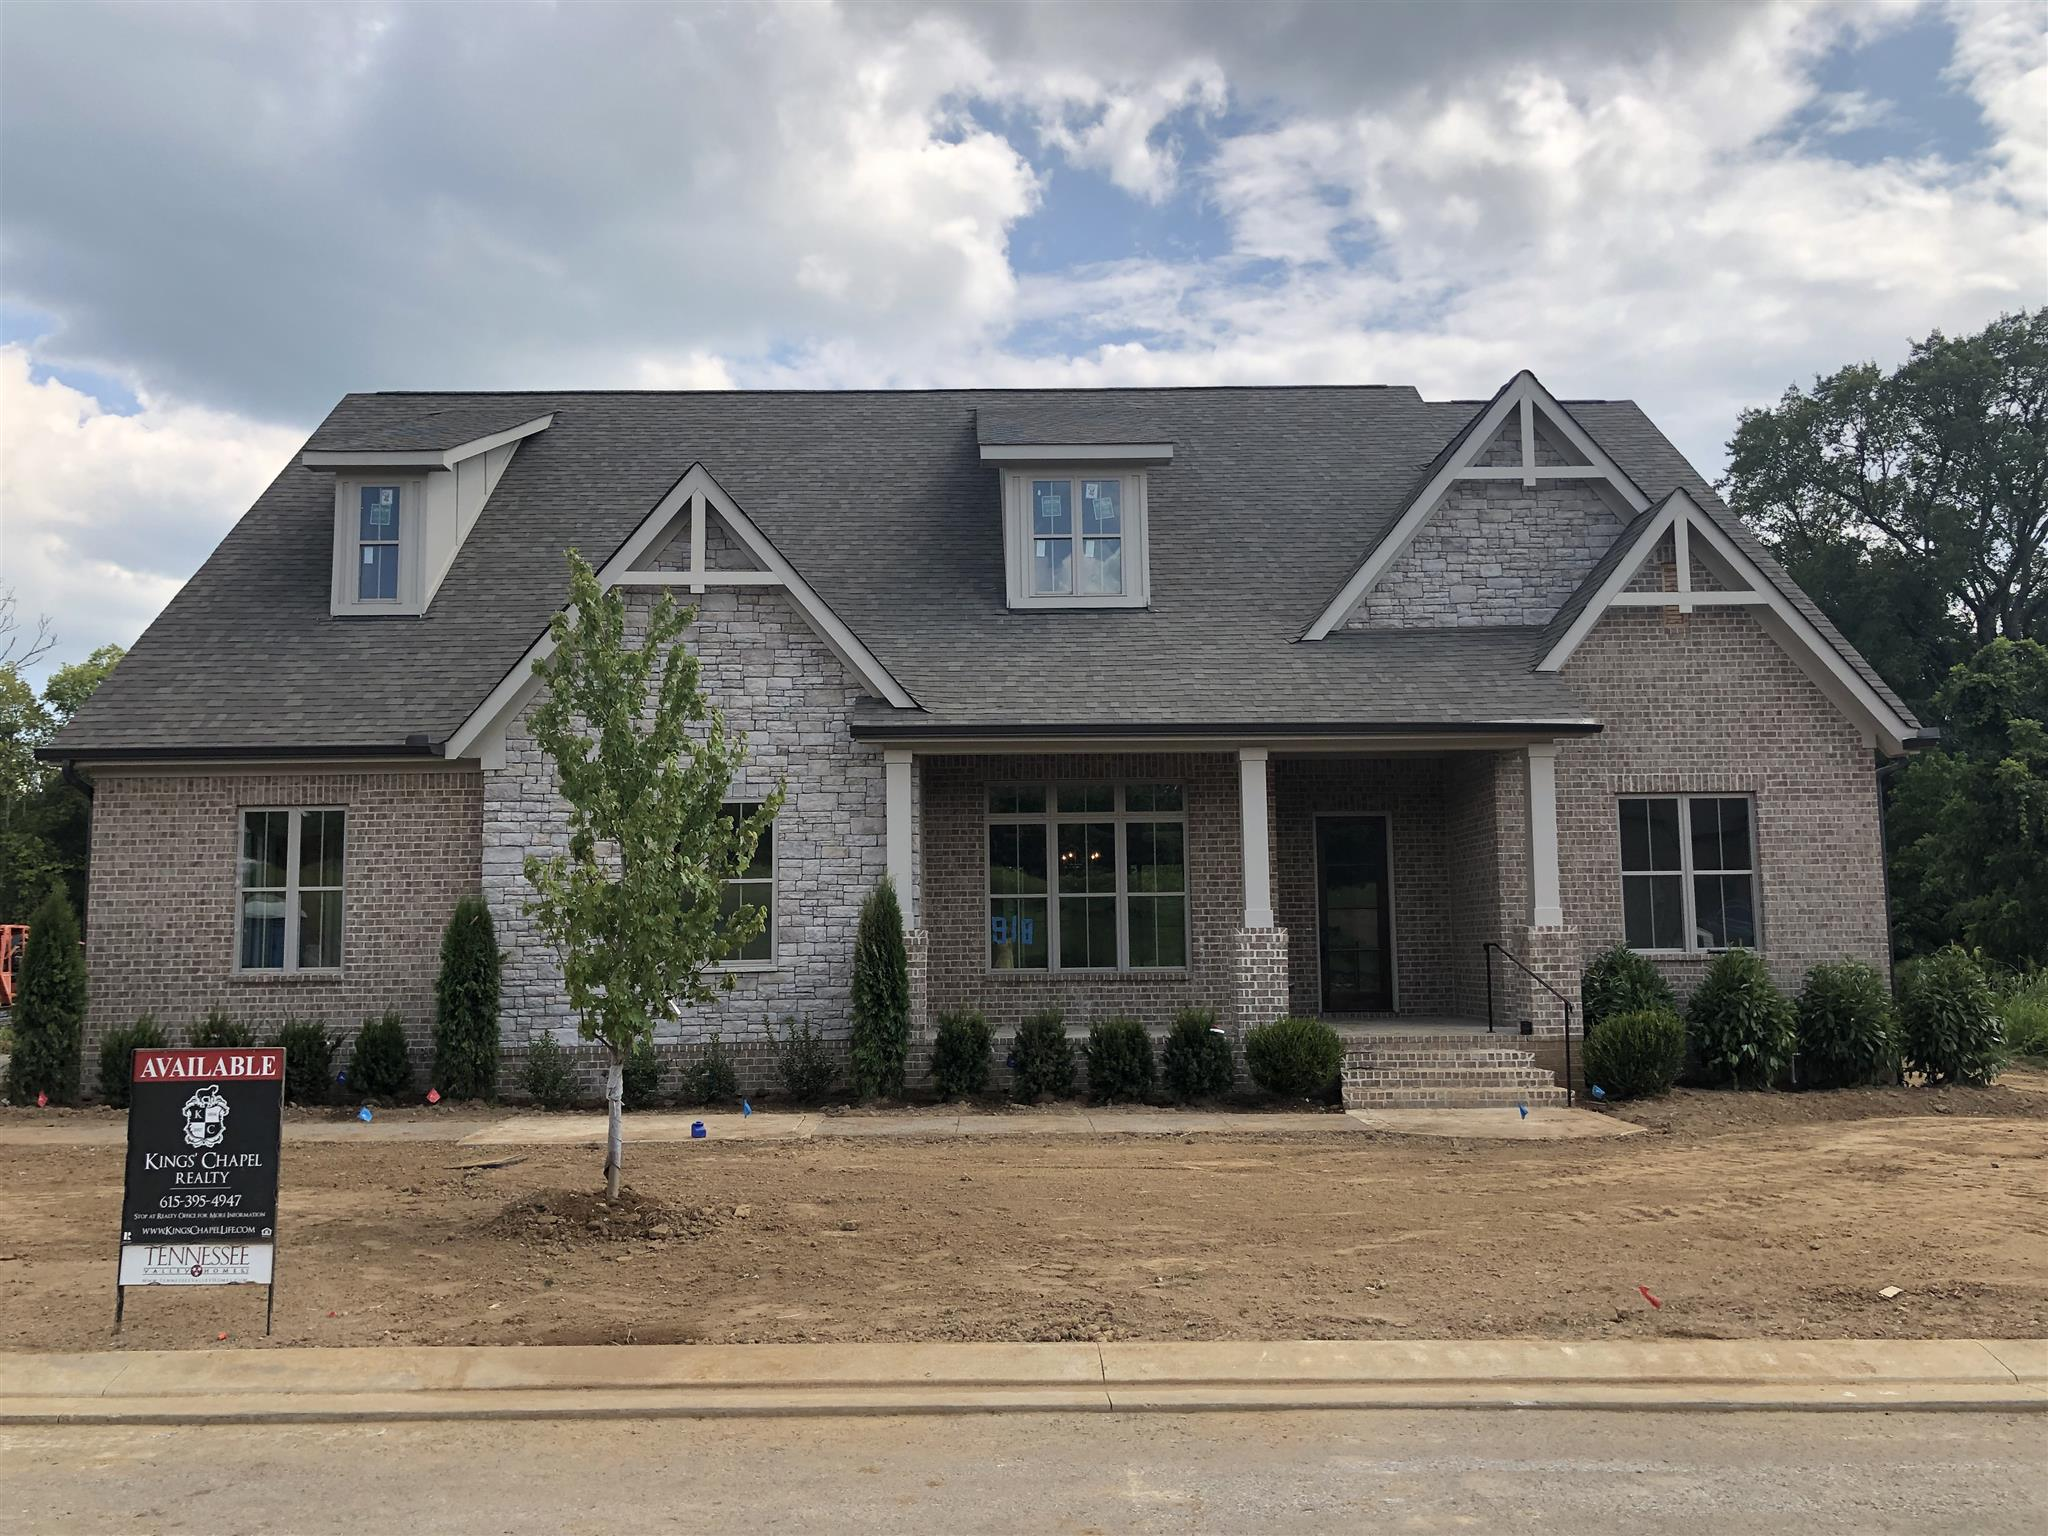 4589 Majestic Meadows Dr LOT818, Arrington, TN 37014 - Arrington, TN real estate listing